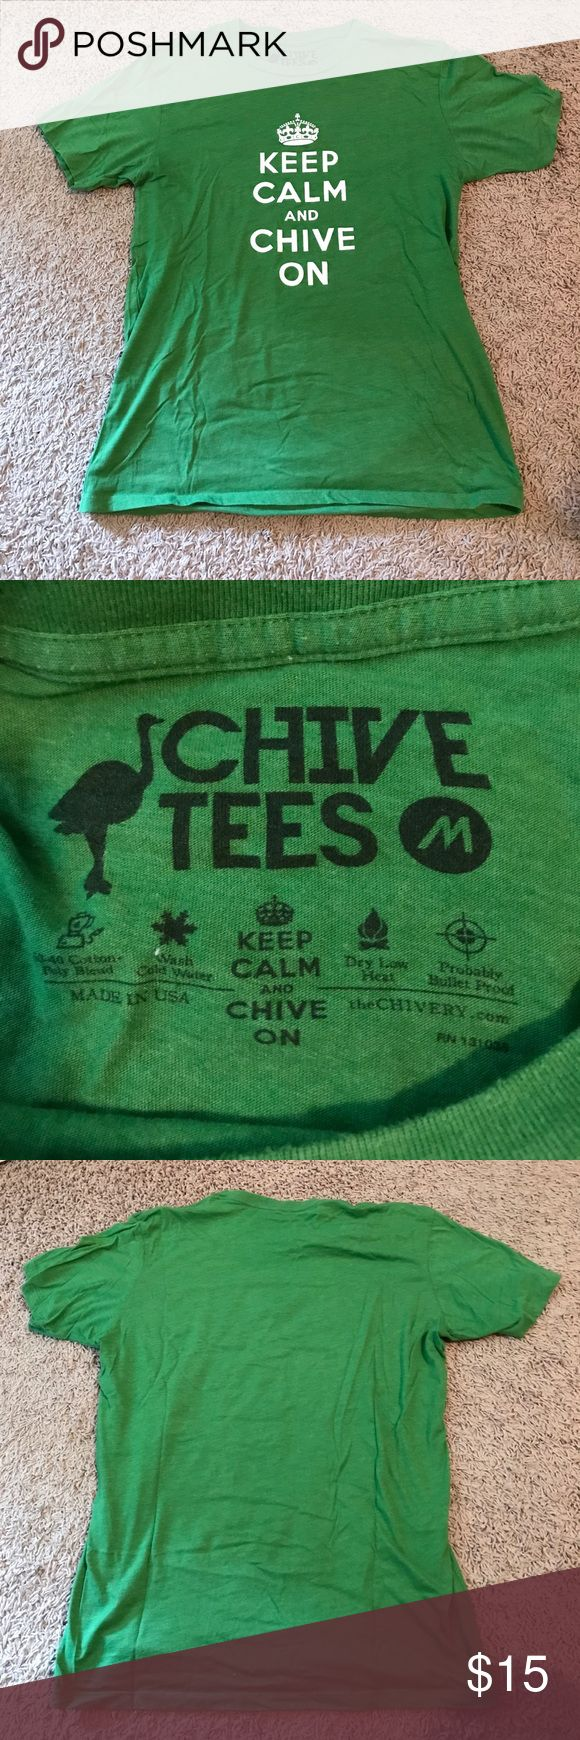 LIKE NEW men's The Chive tee Great condition t-shirt from The Chive The Chive Shirts Tees - Short Sleeve